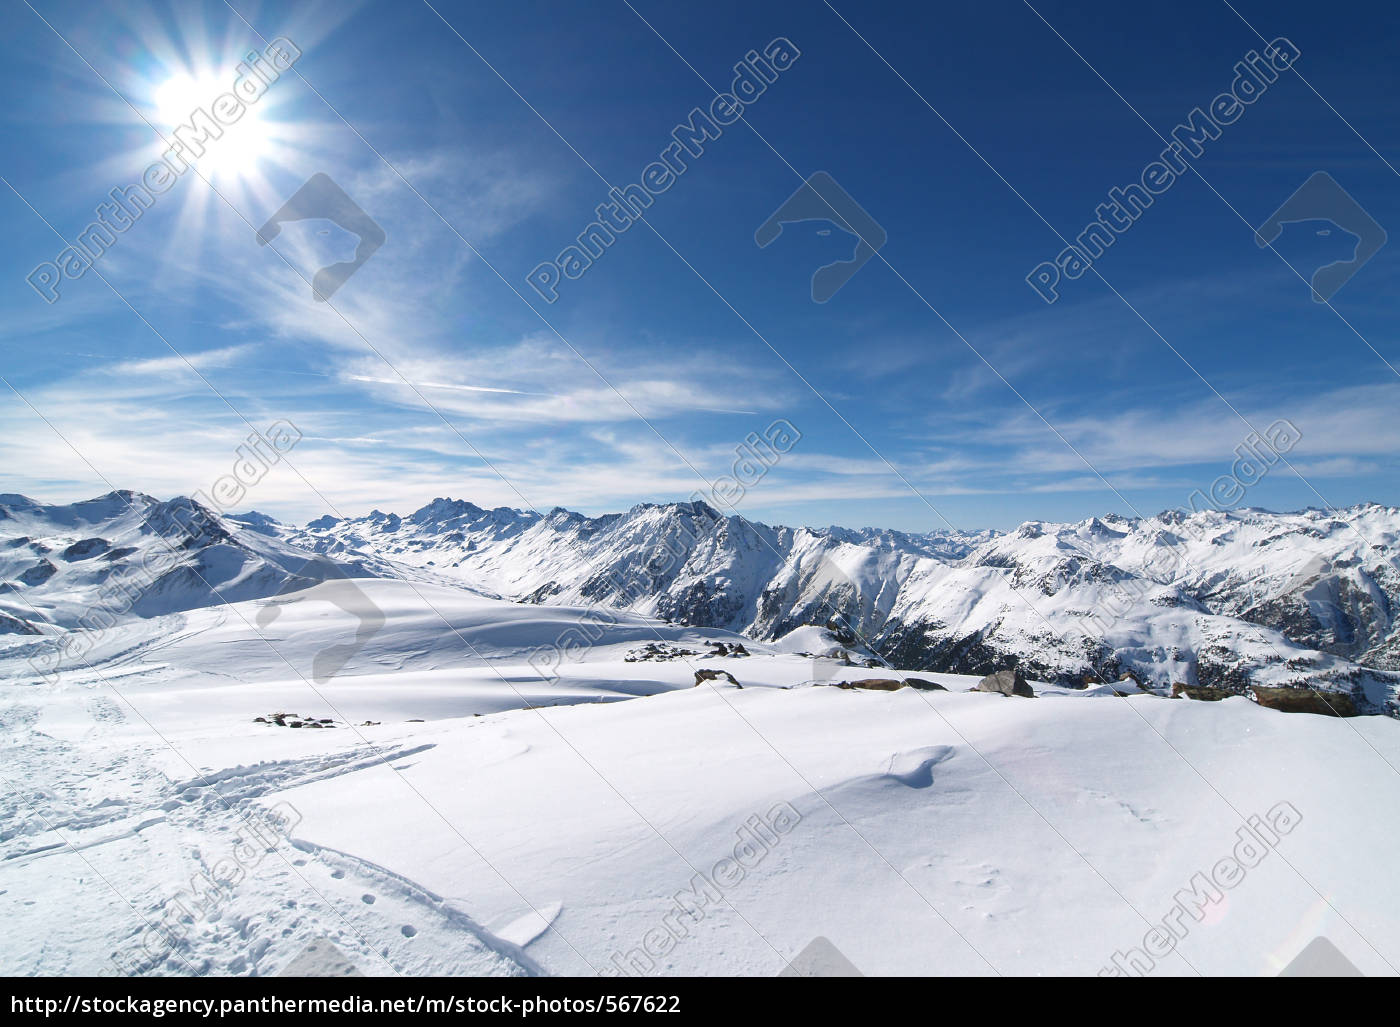 mountain, winter - 567622